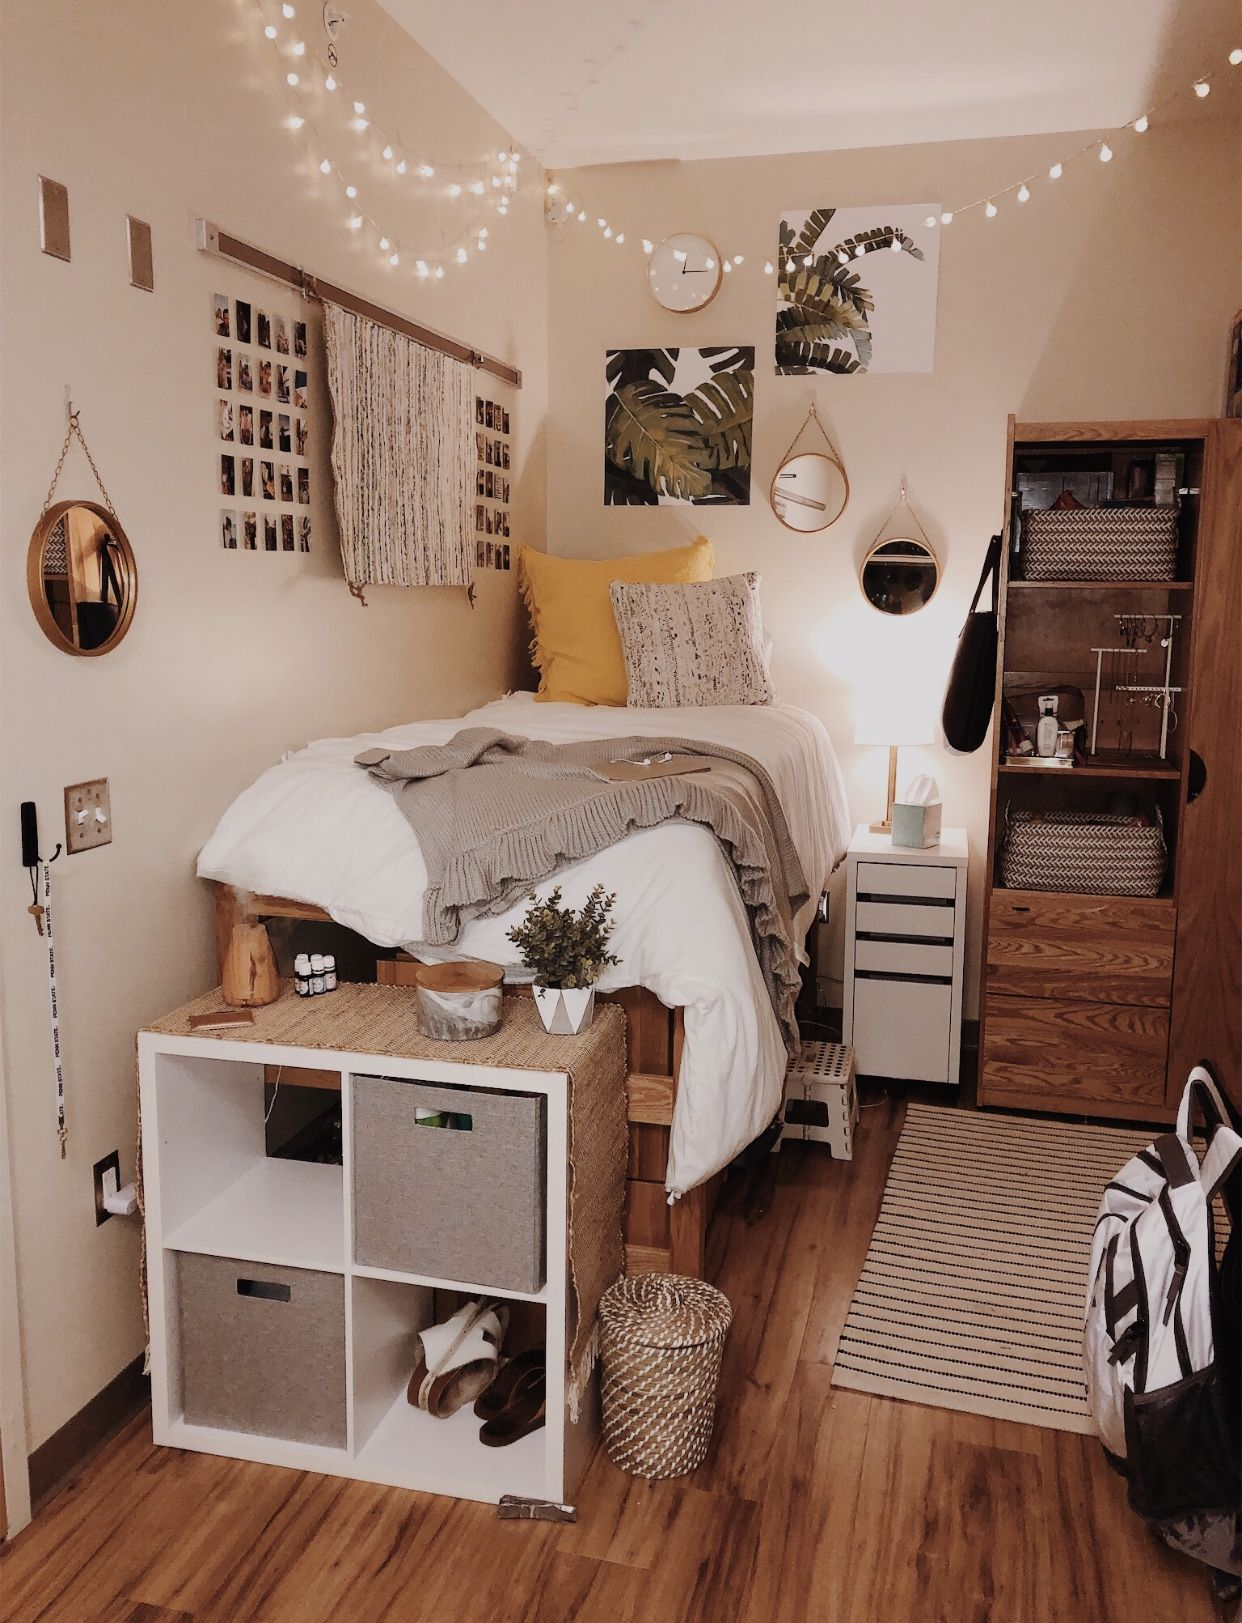 College Dorm Room Design: Dorm Room Inspiration, Dorm Room